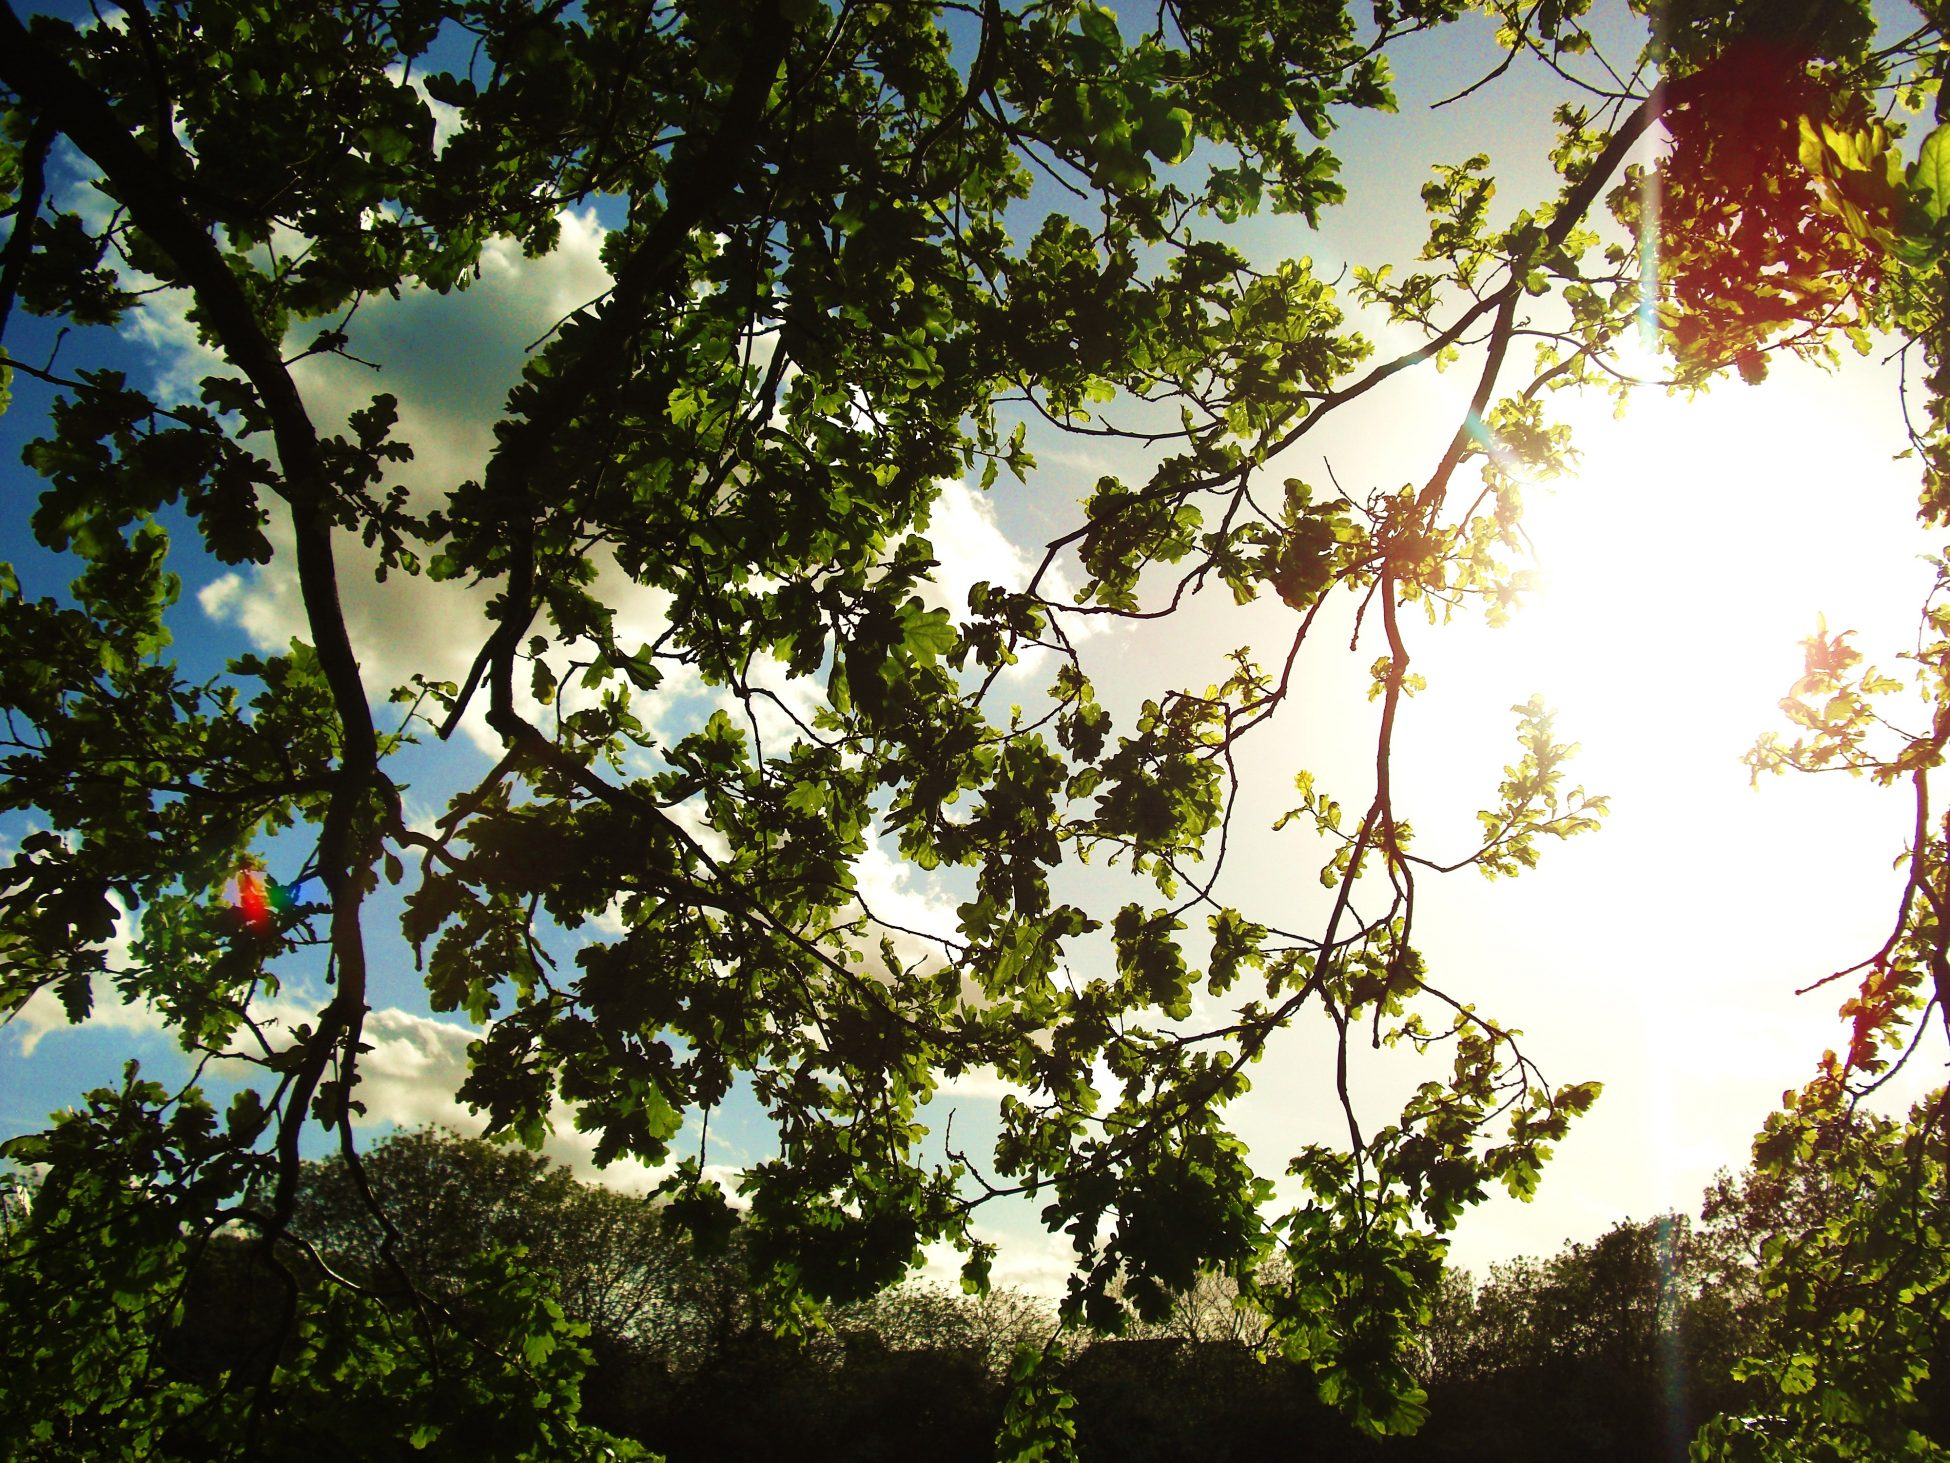 Photo looking up at a blue sunny sky through tree branches